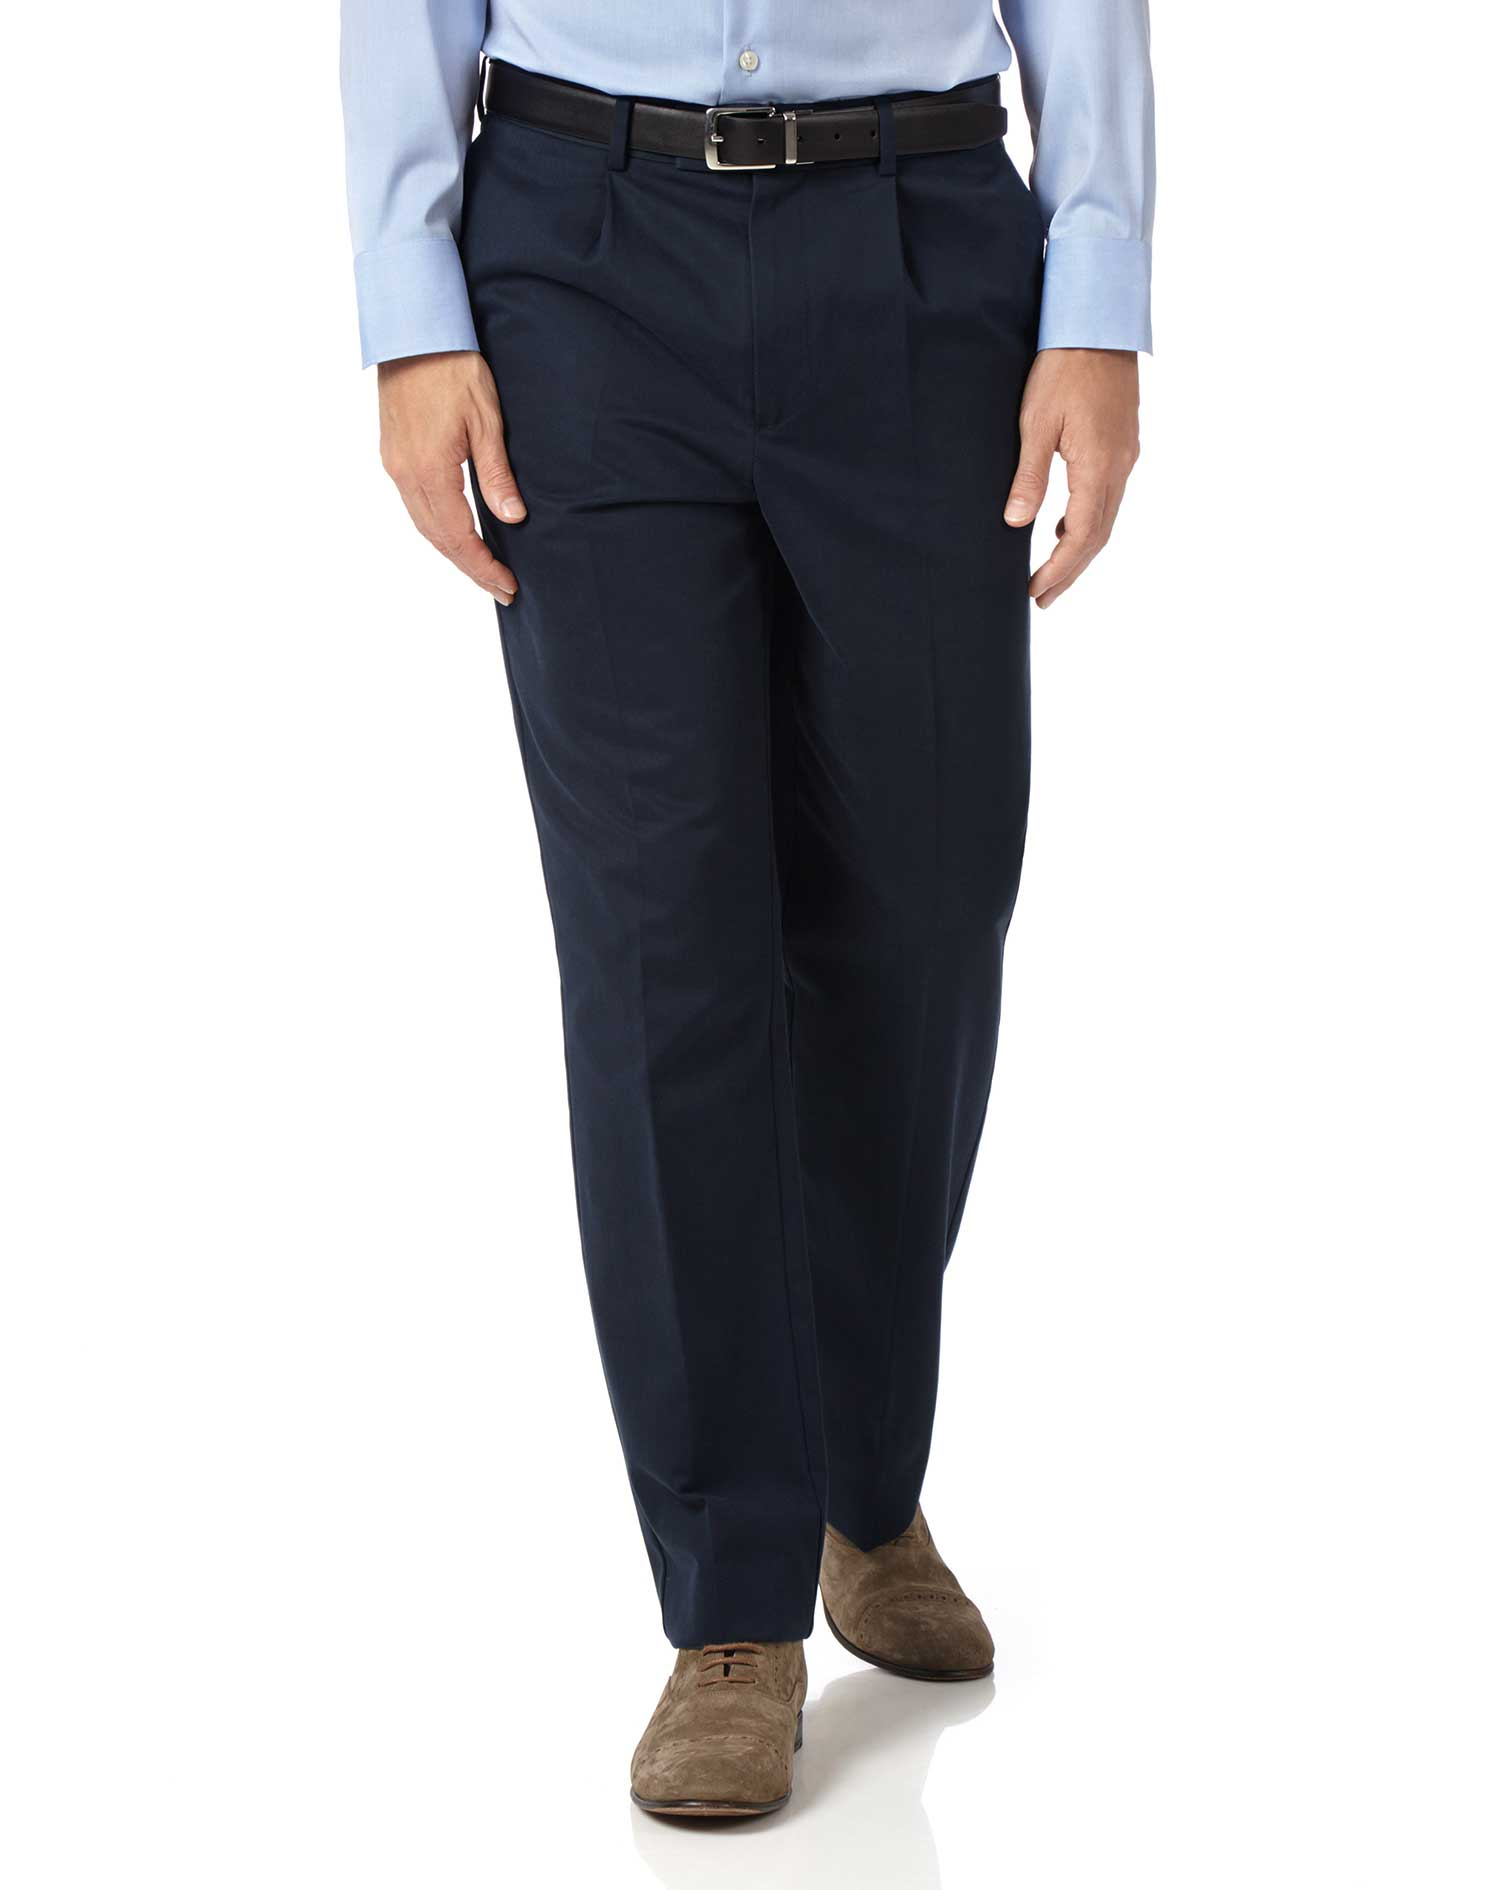 Navy Classic Fit Single Pleat Non-Iron Cotton Chino Trousers Size W36 L34 by Charles Tyrwhitt